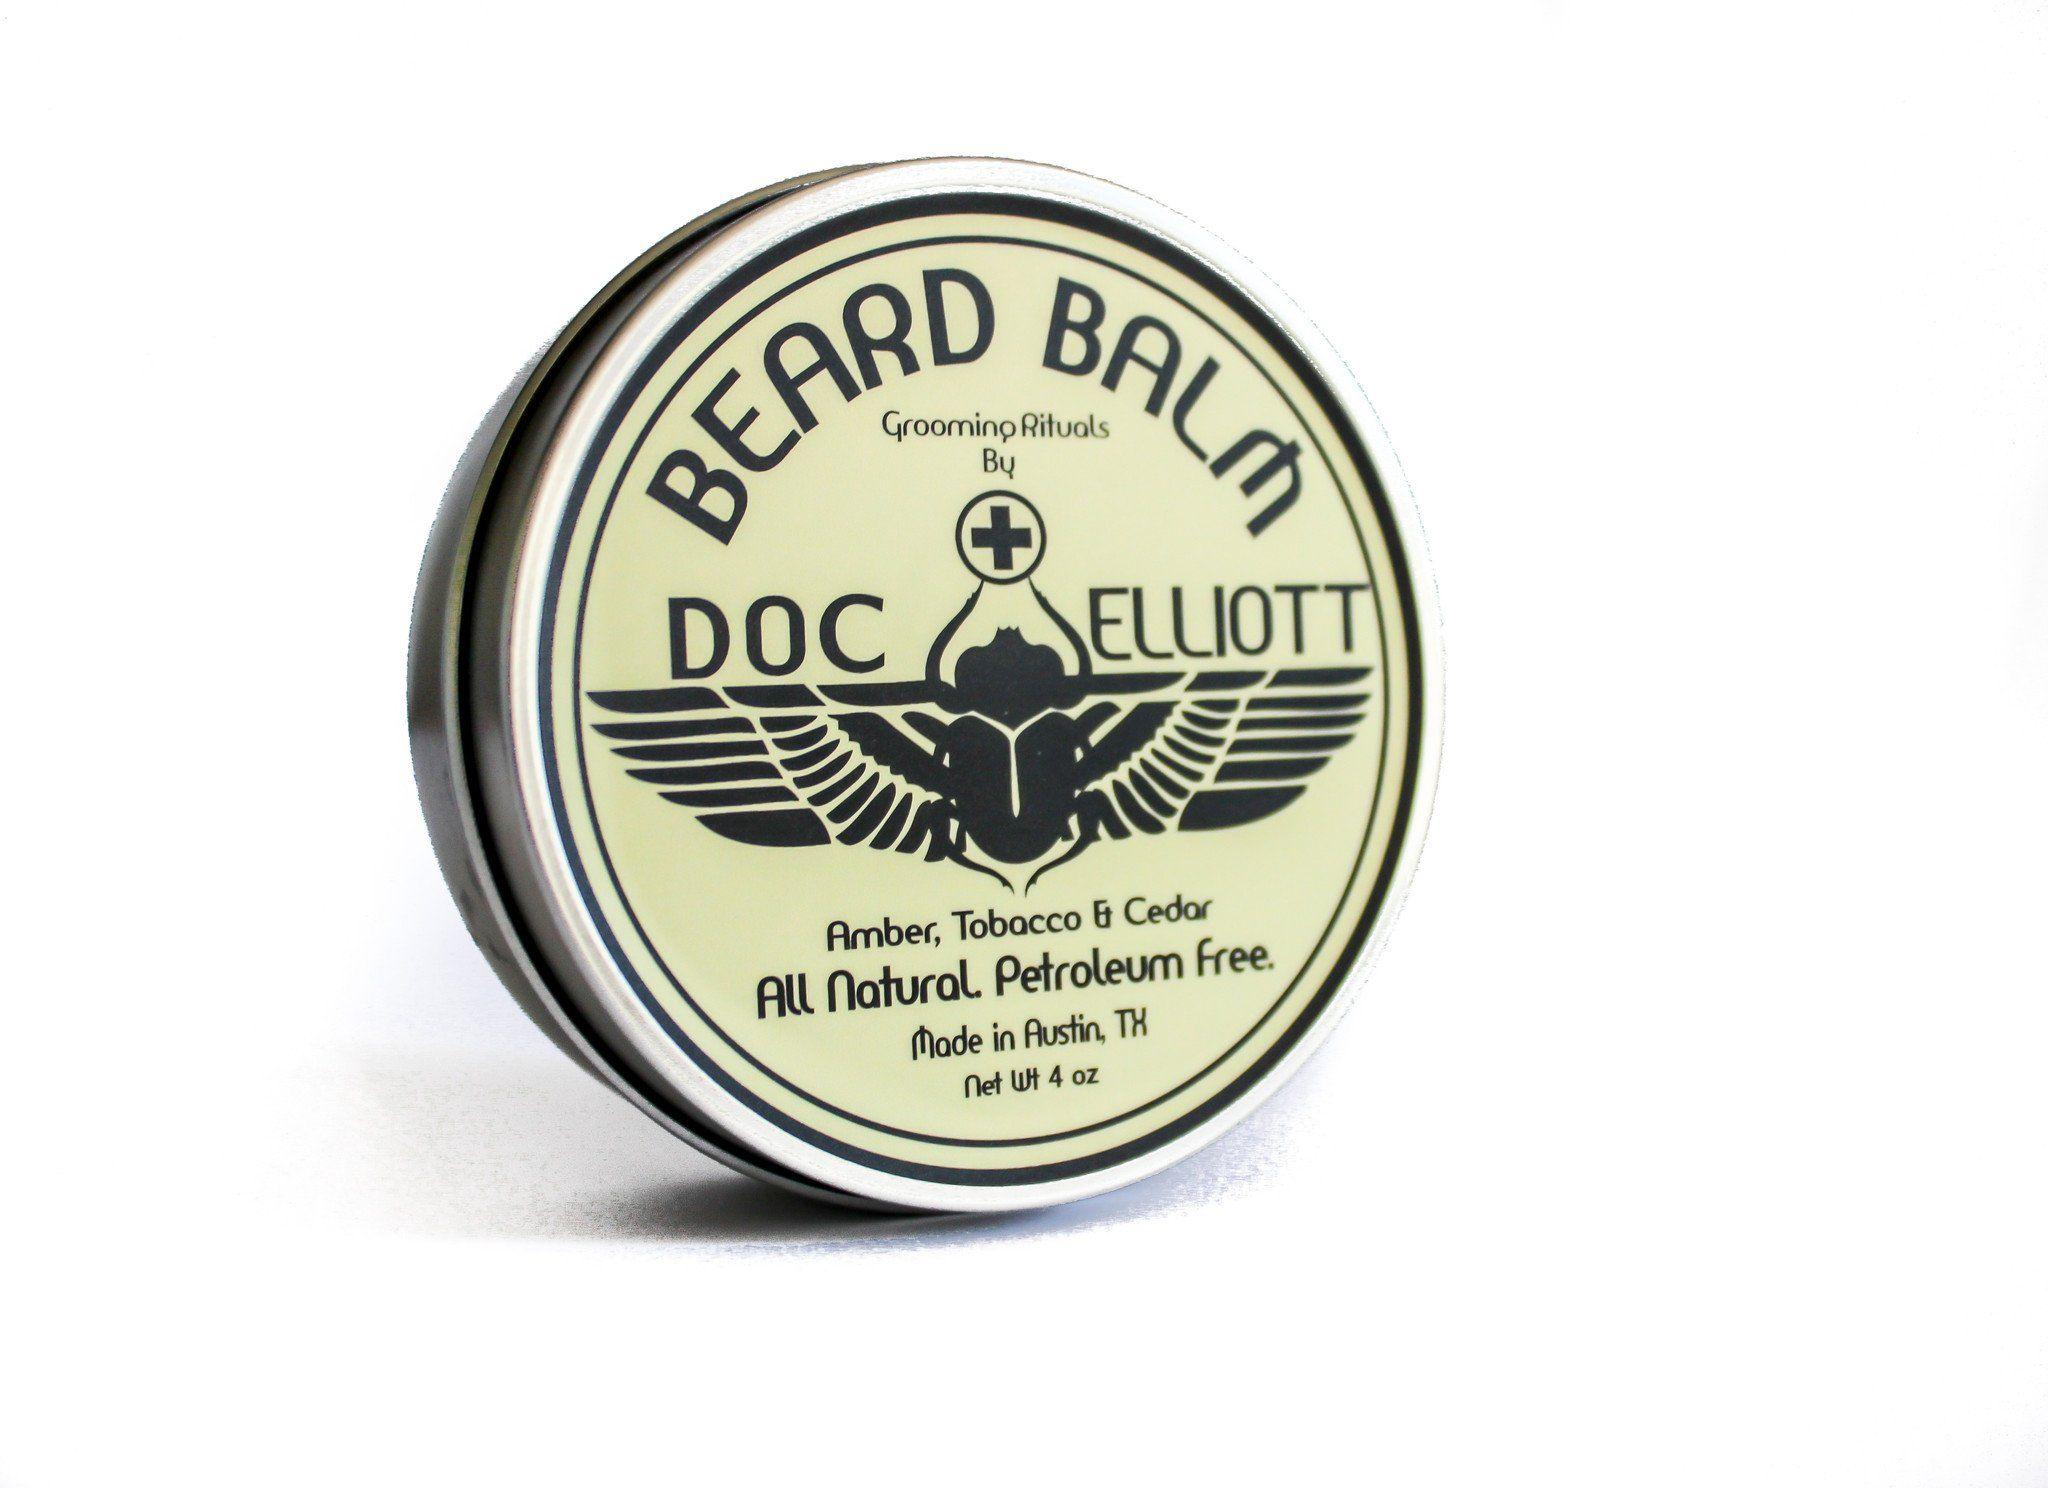 Classic beard balm white label with images beard balm